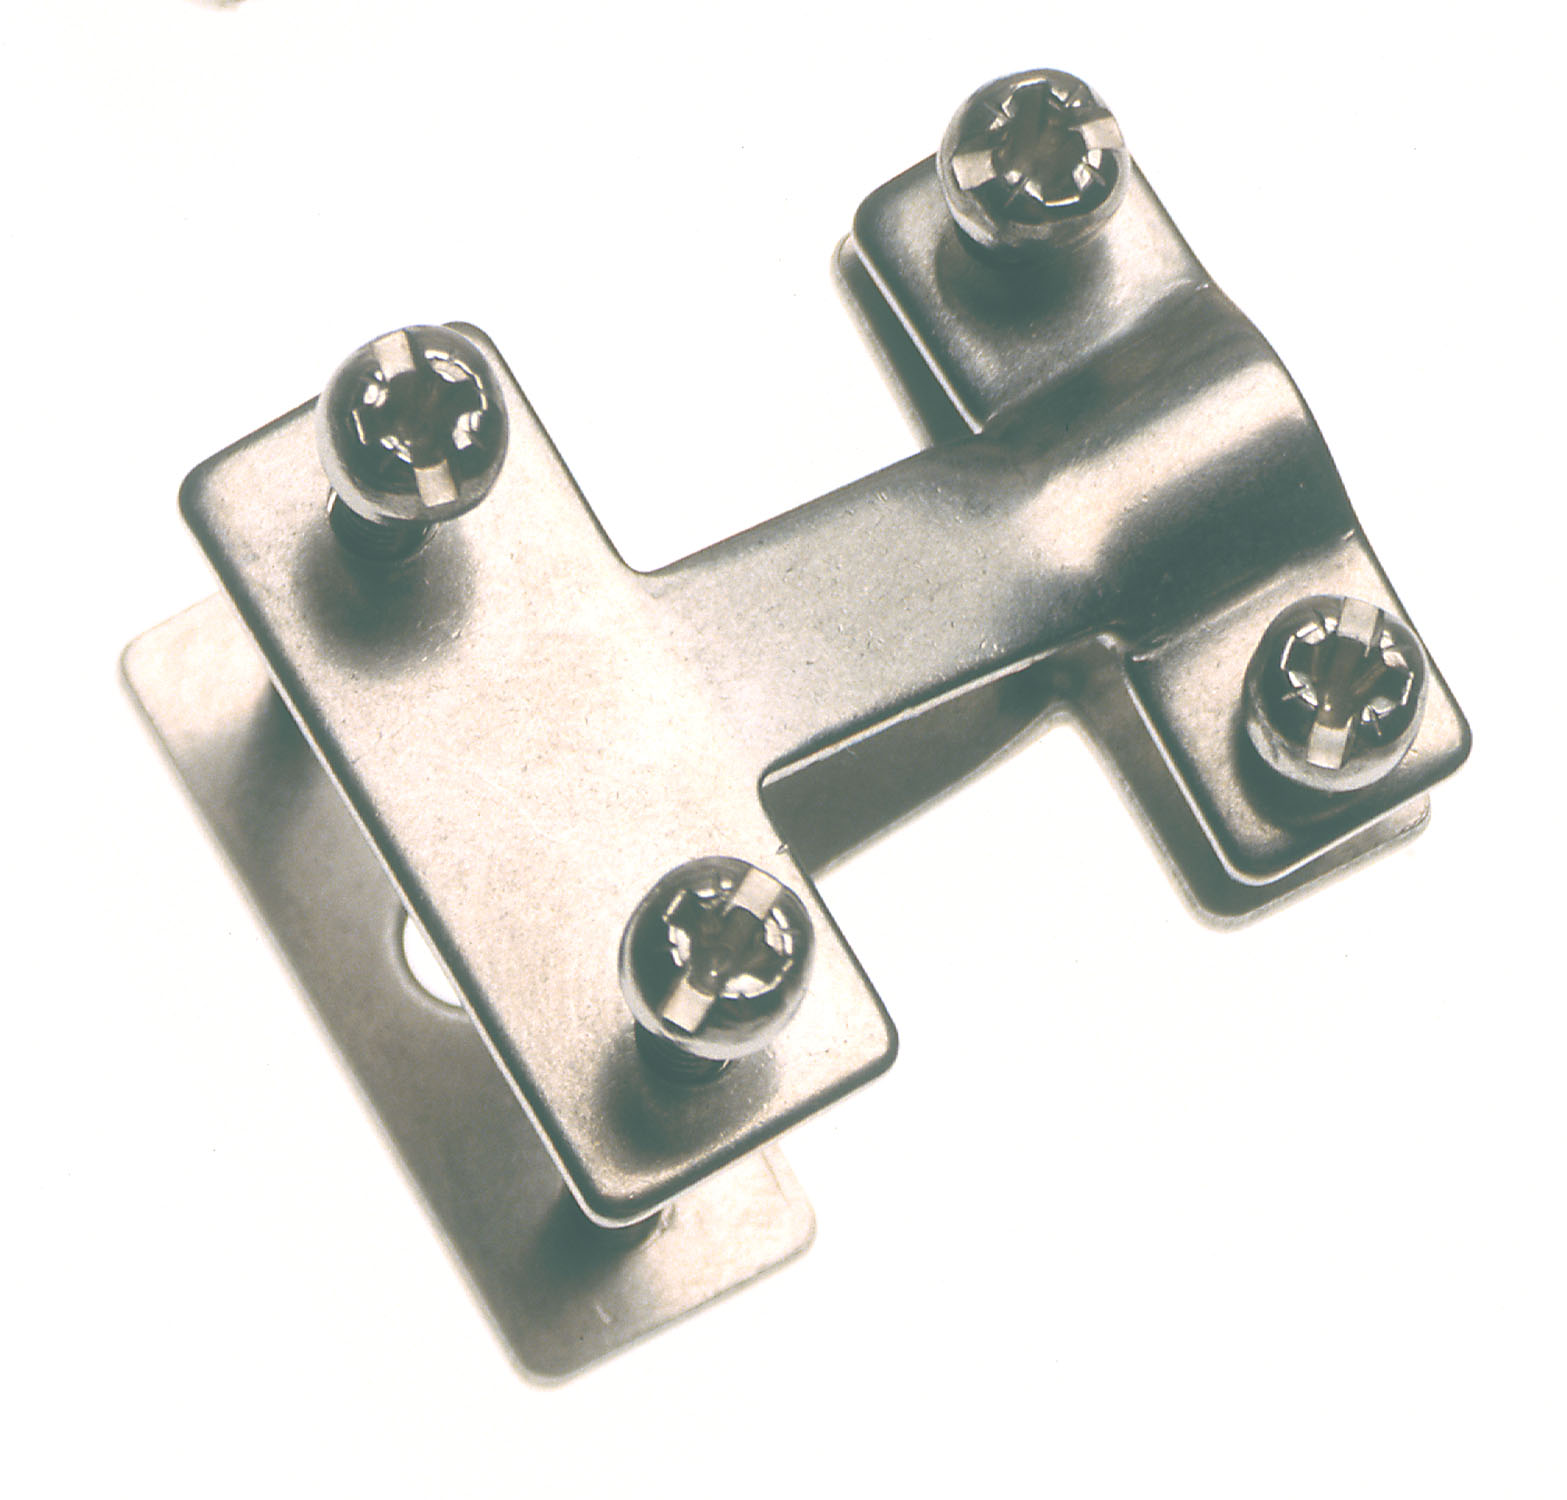 Thermocouple Connector Accessories